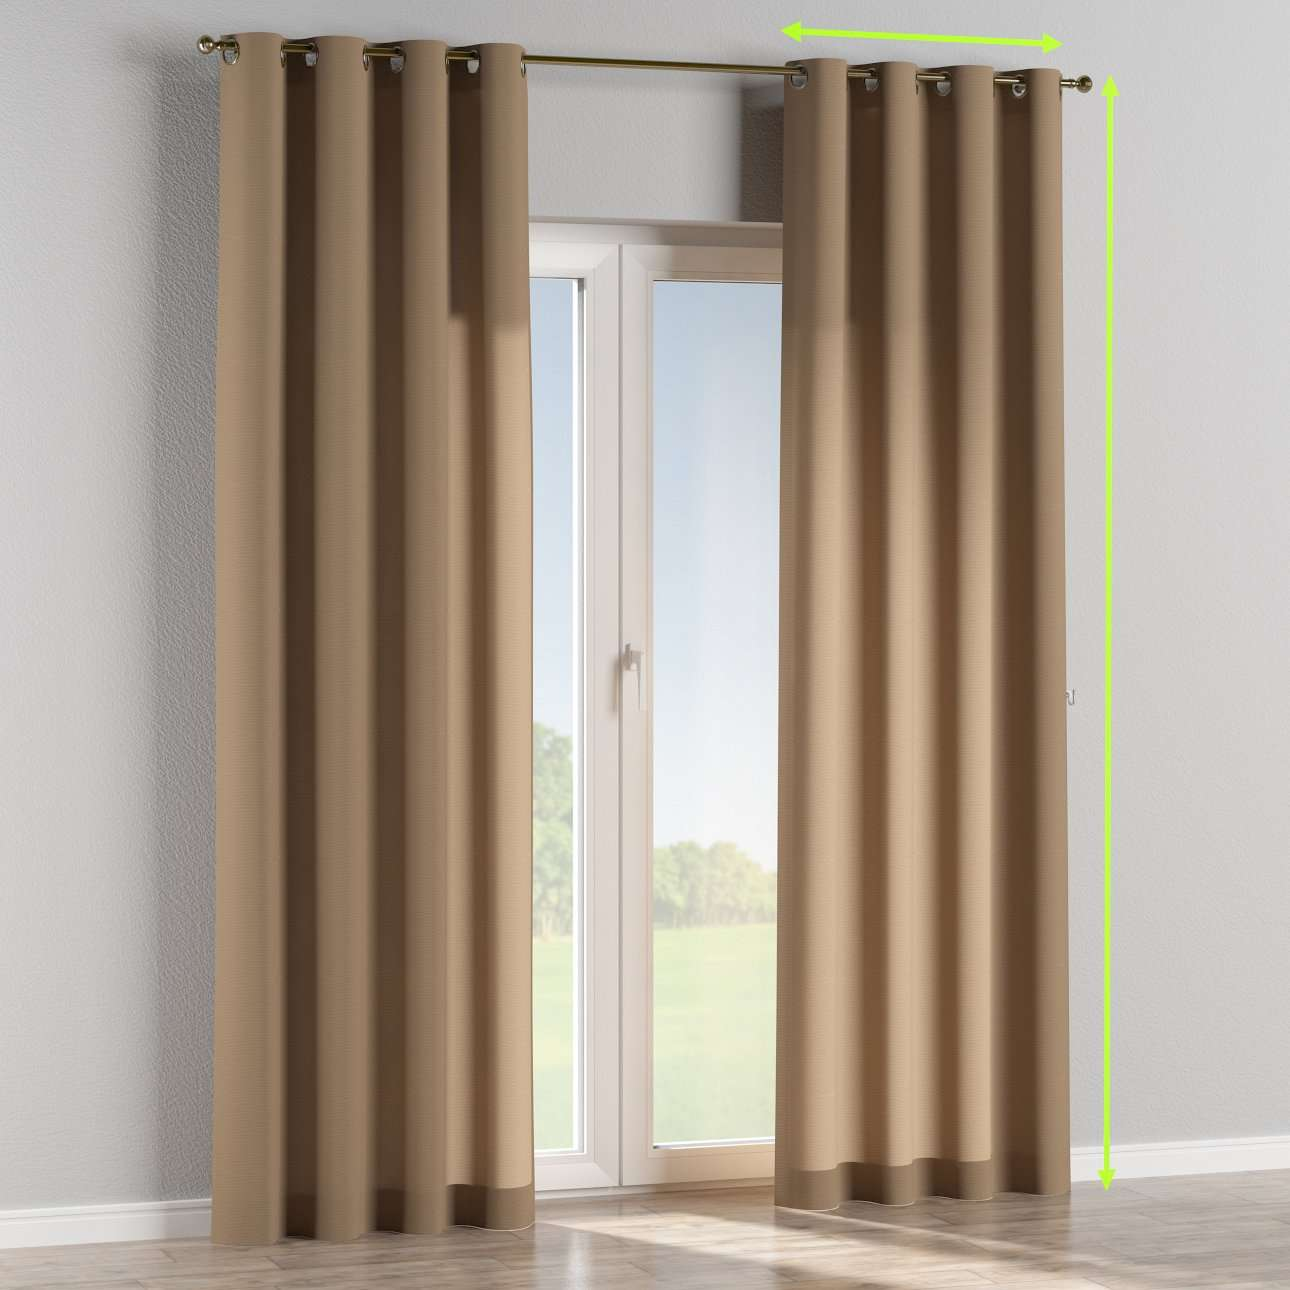 Eyelet lined curtains in collection Quadro, fabric: 136-09